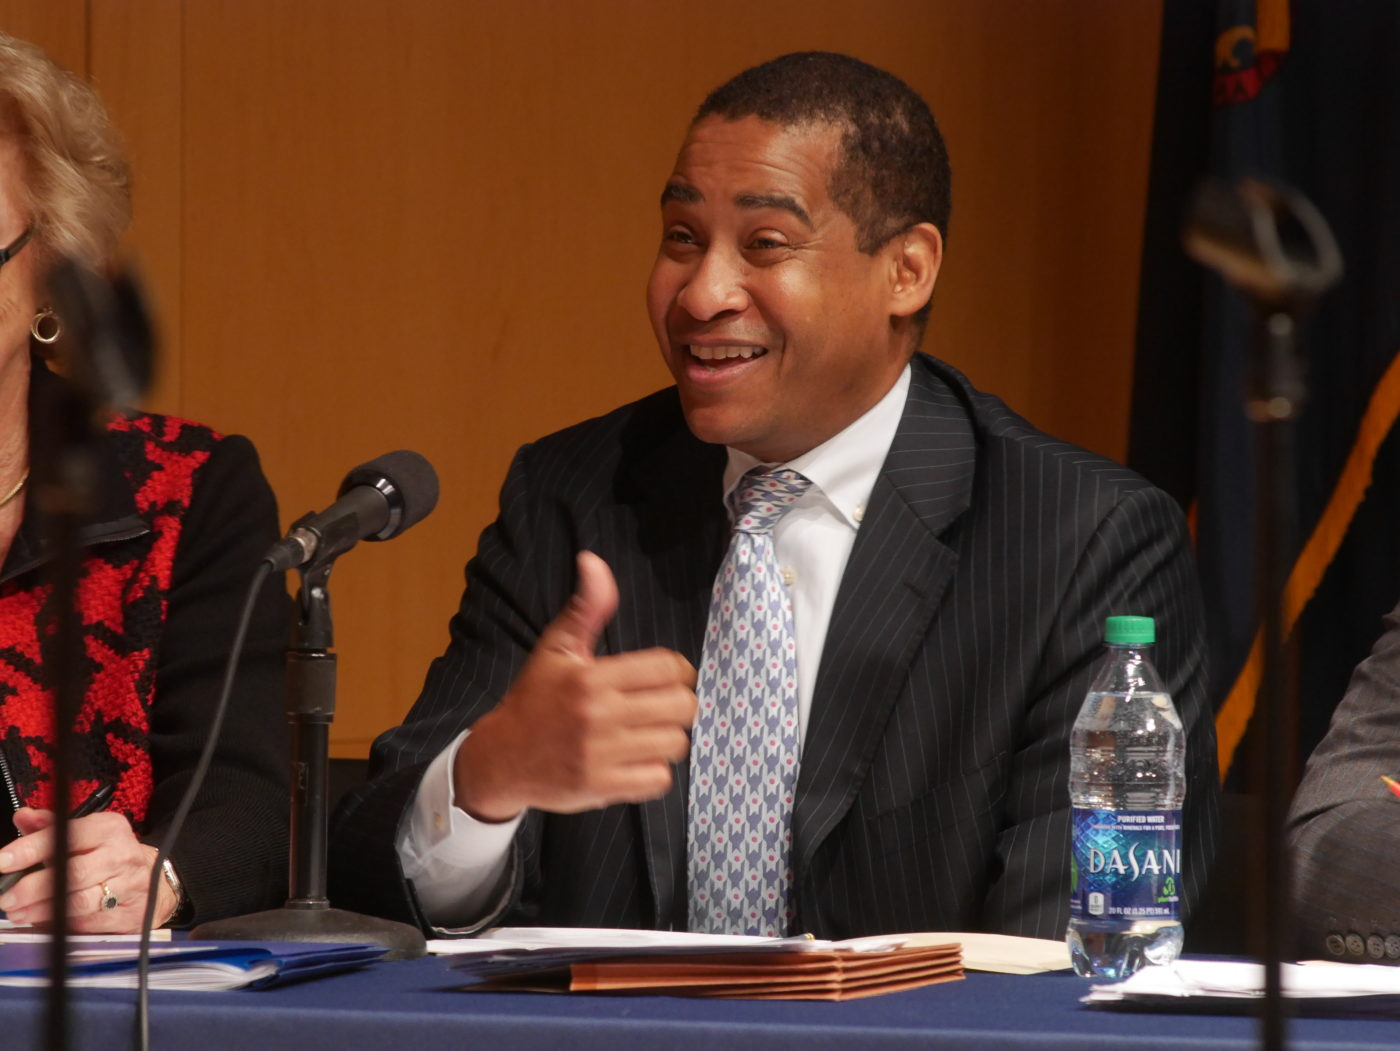 Zane Memeger, U.S. Attorney for the Eastern District of Pennsylvania.